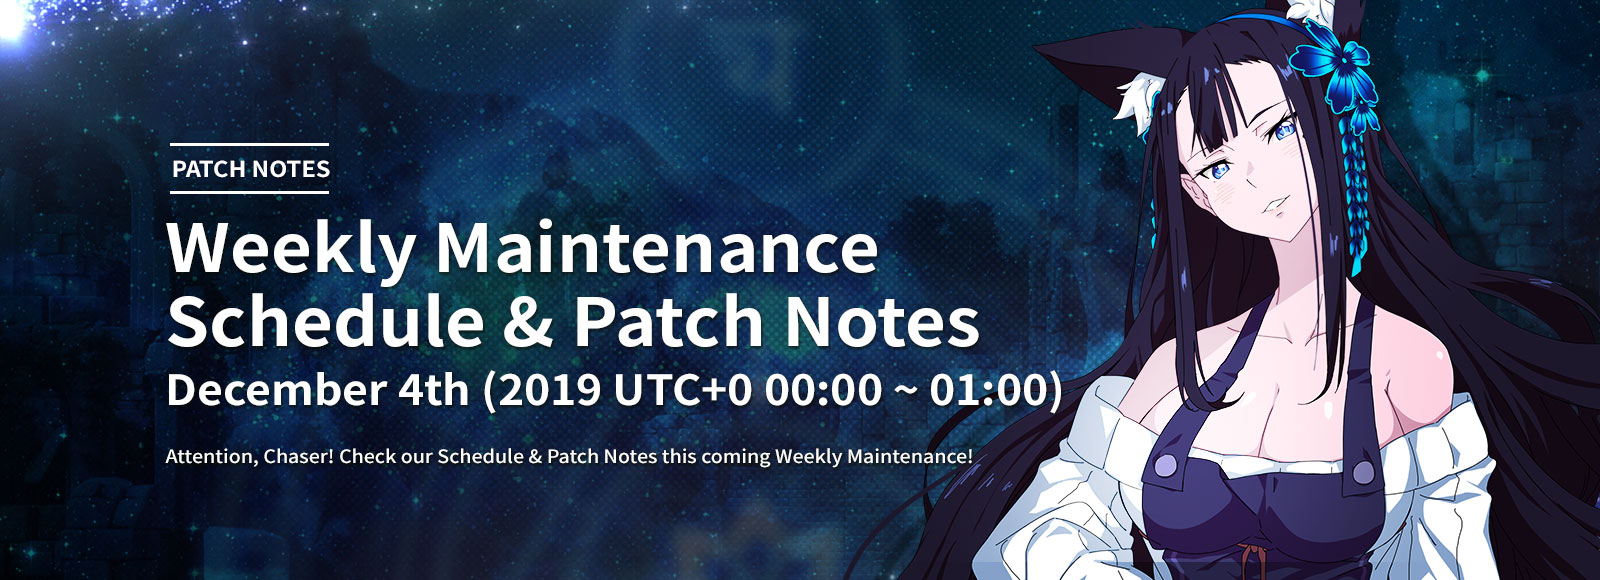 December 4th Weekly Maintenance Schedule & Patch Notes